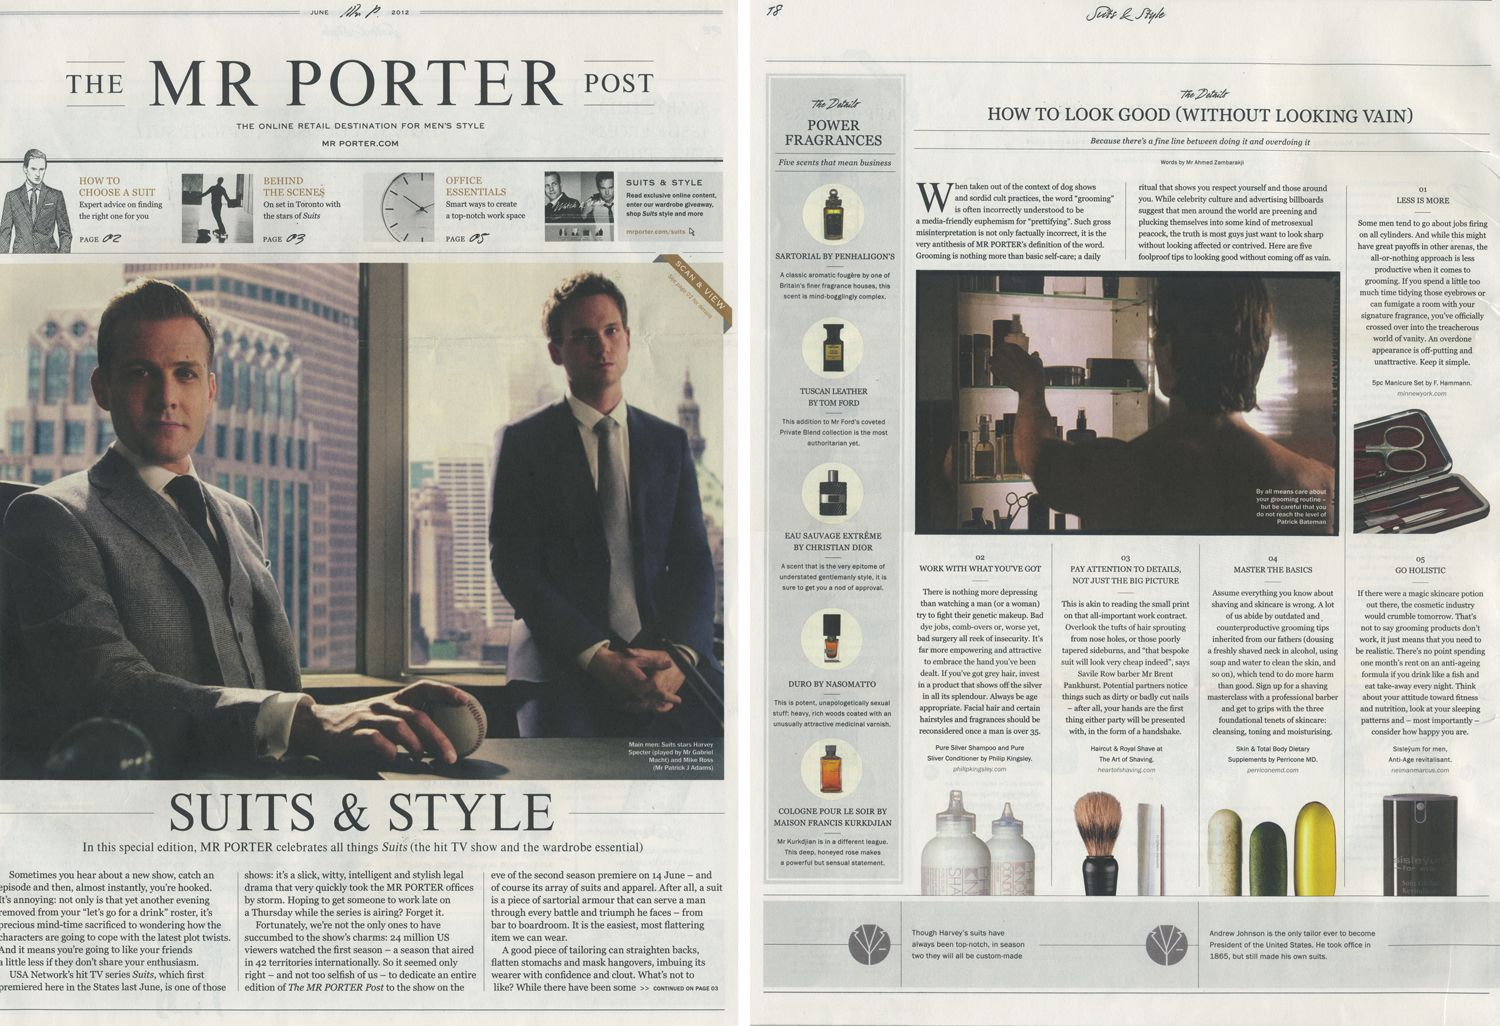 Le Meilleur Image Result For Mr Porter Newspaper Layout Print Layout Ce Mois Ci